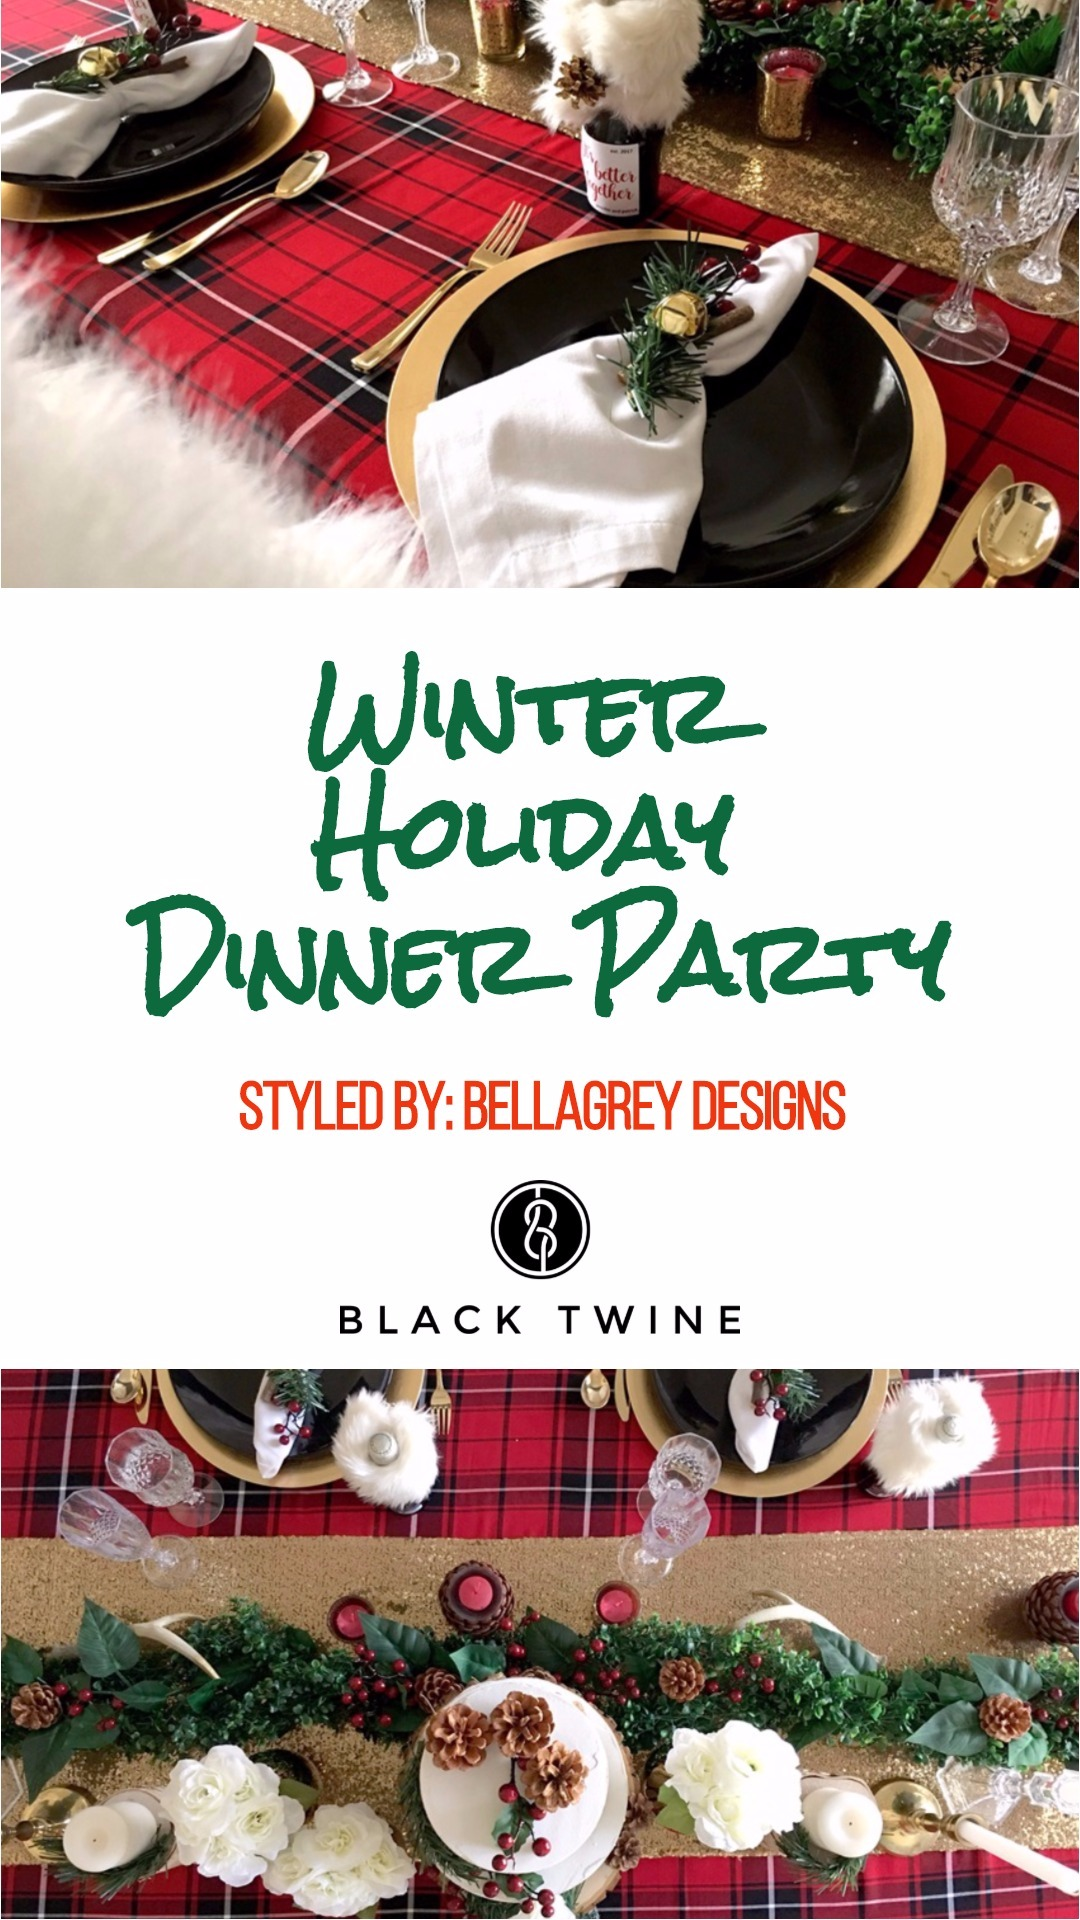 Winter Holiday Dinner Party styled by BellaGrey Designs | Black Twine